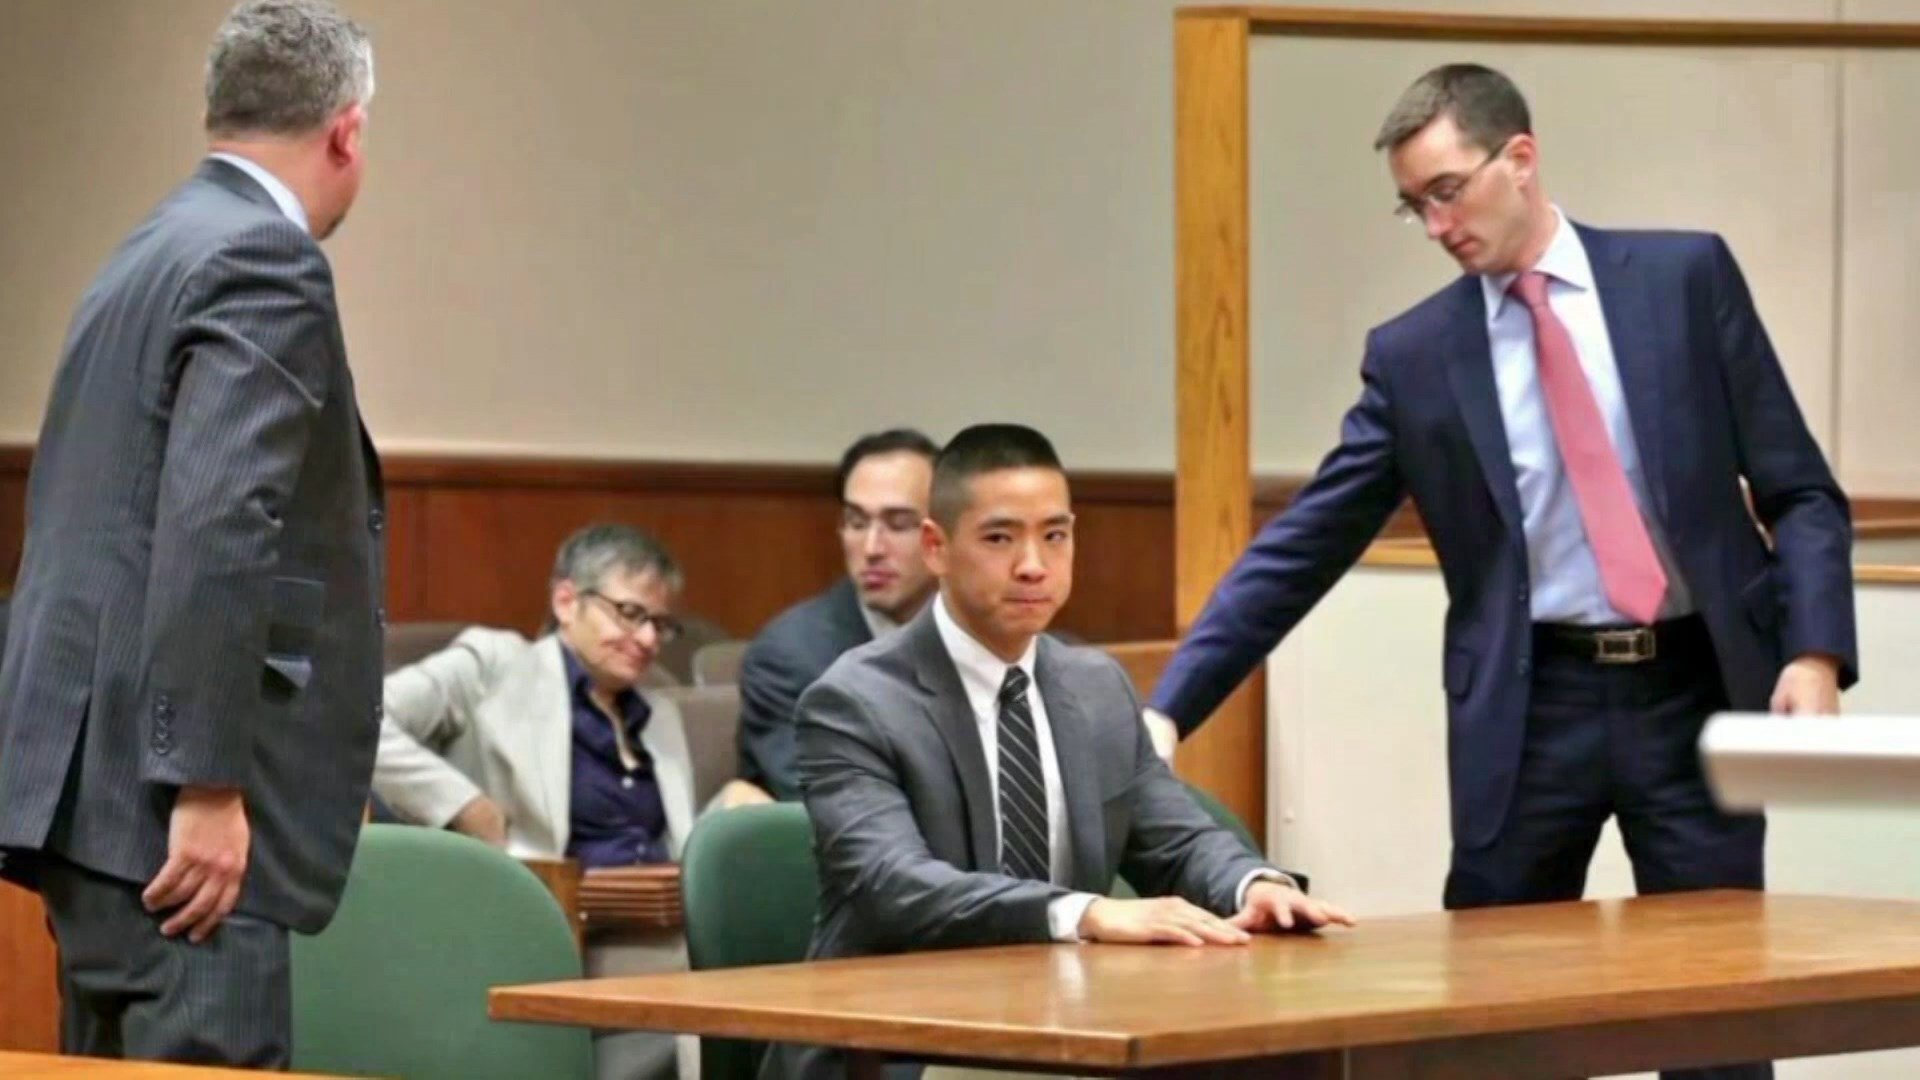 Charles Tan enters pleads not guilty to new gun charges